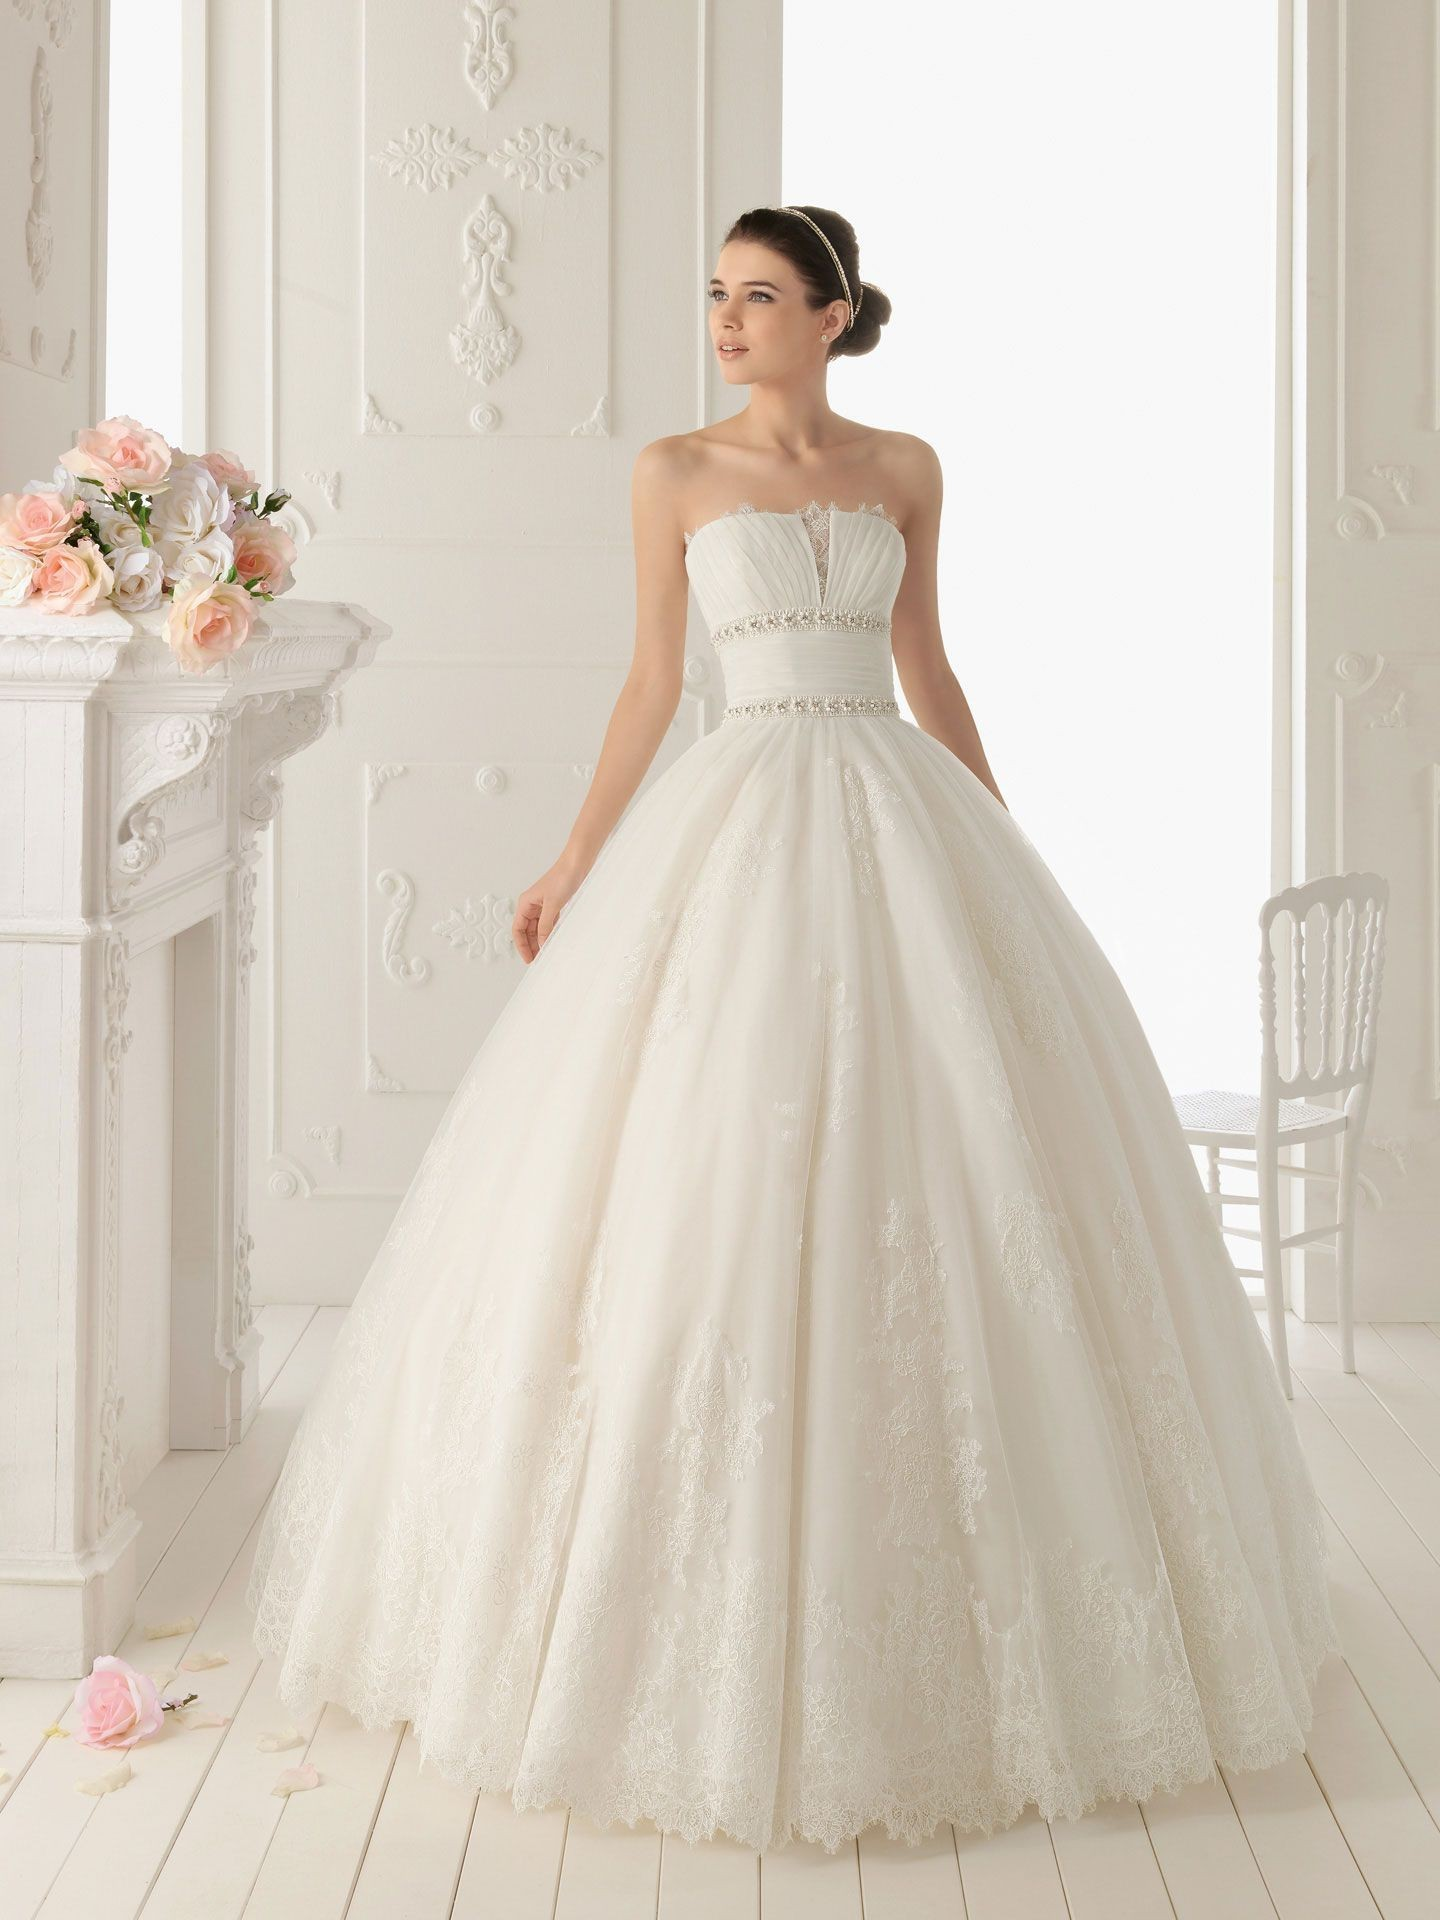 Ball gown wedding dresses with lacecherry marry cherry marry for Marry me wedding dresses